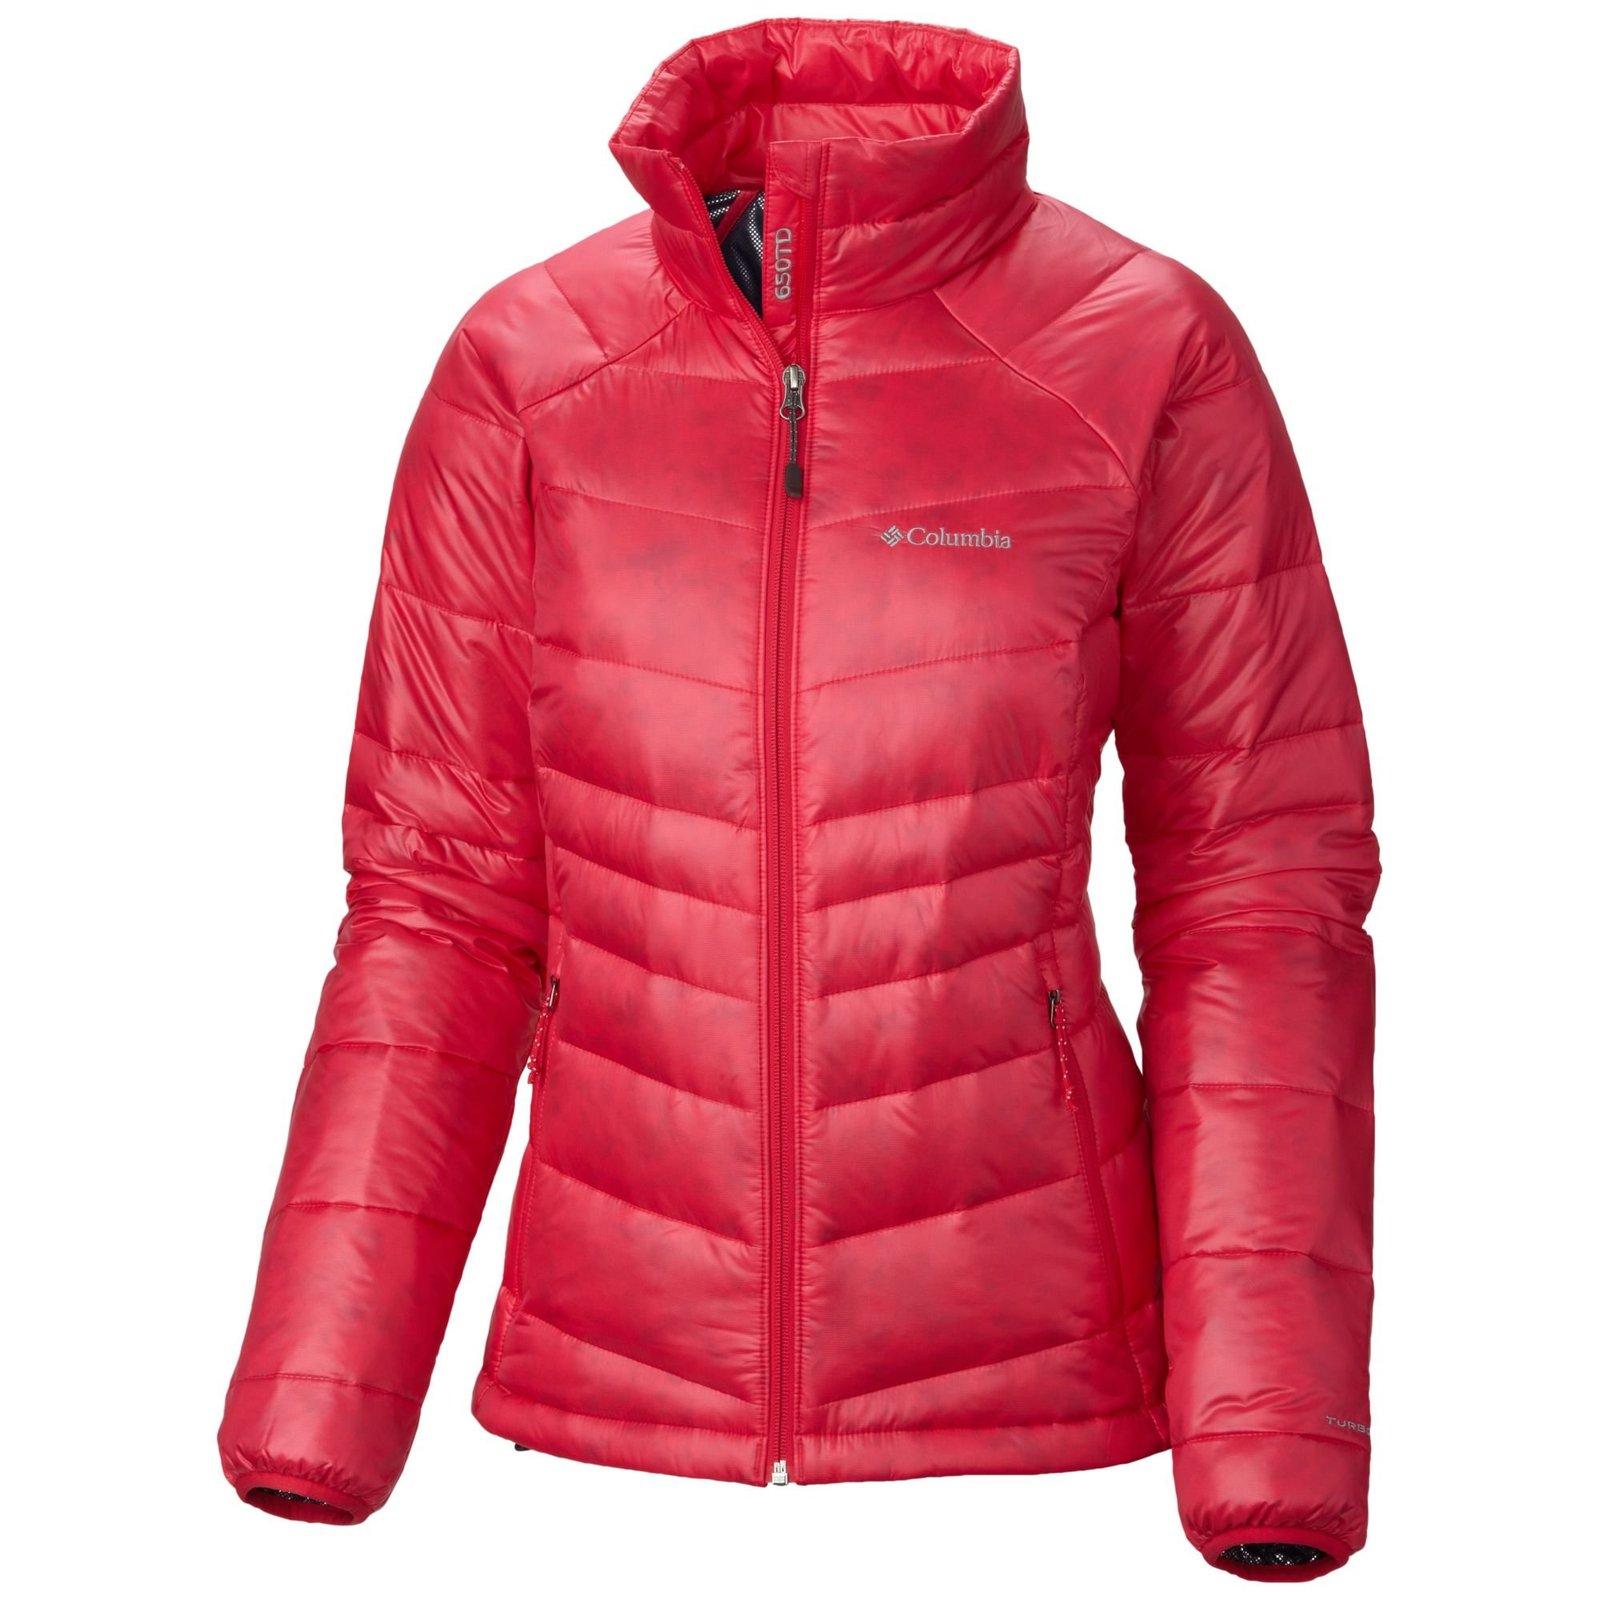 Columbia Women's Gold 650 TurboDown Down Jacket Ruby Red S